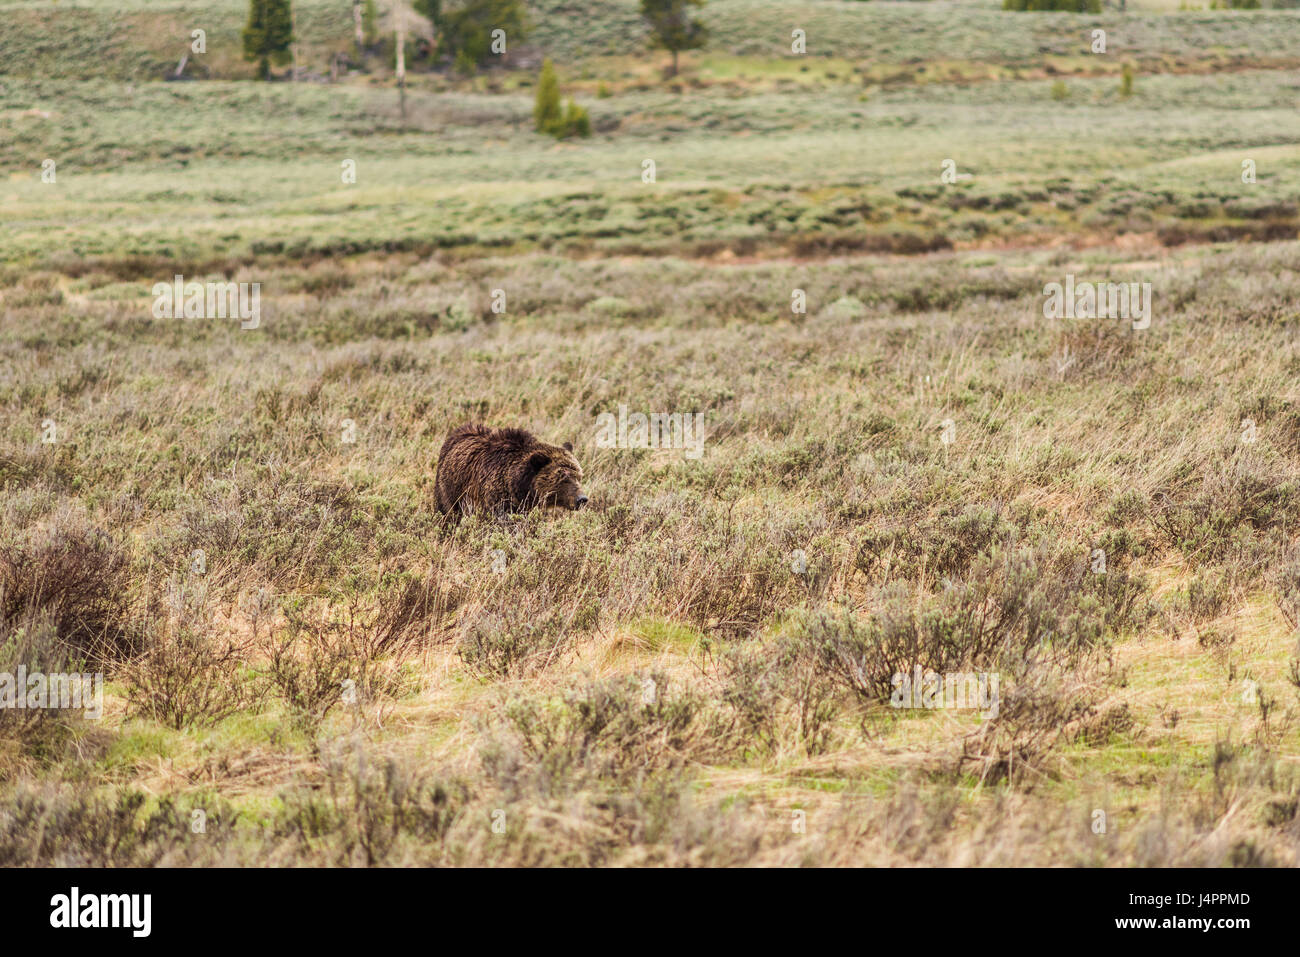 Grizzly bear walking - photo#38